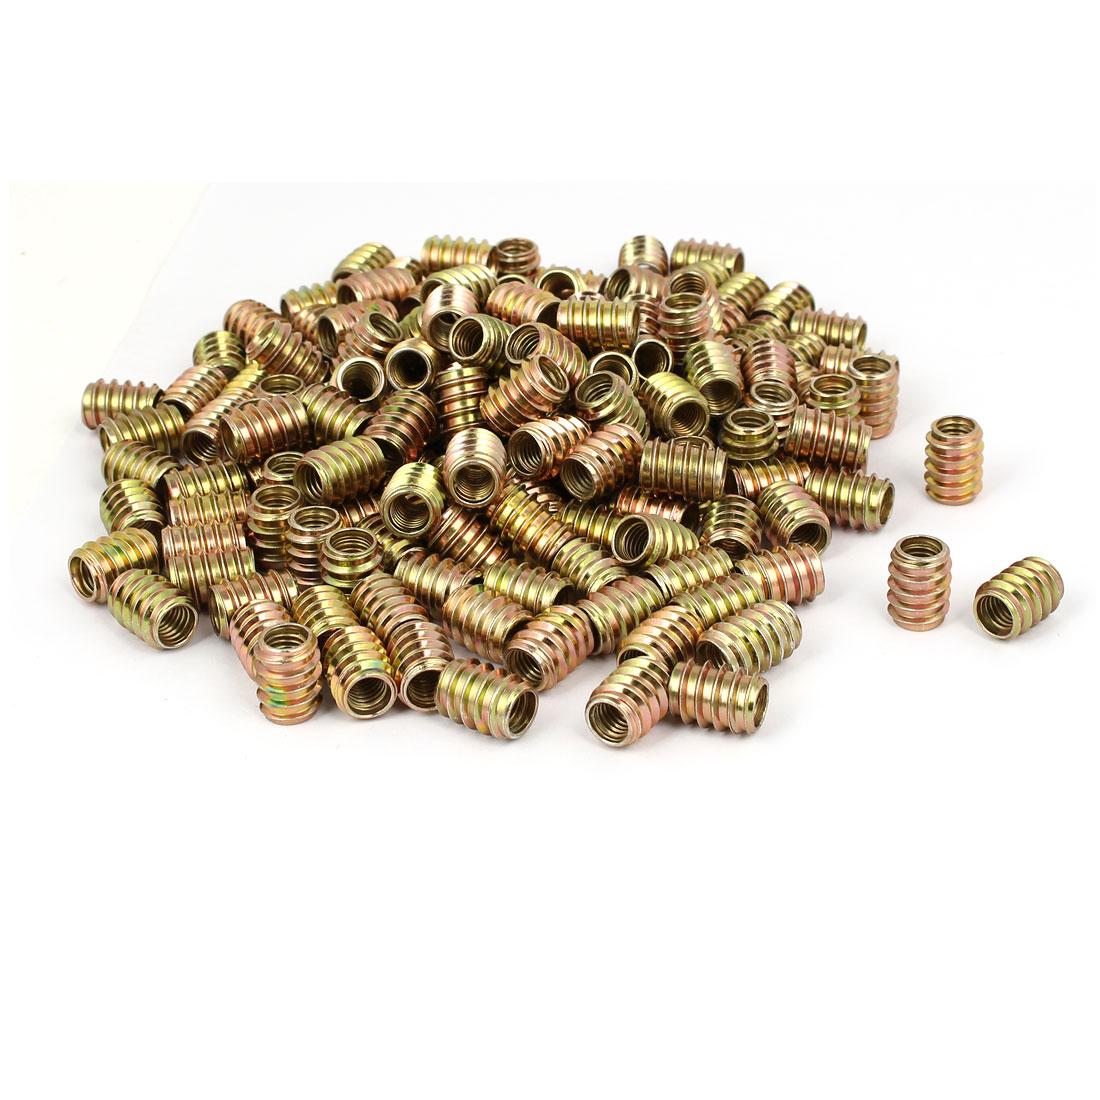 Wood Furniture Insert Screw E-Nut Bronze Tone M8 x 17mm 250pcs